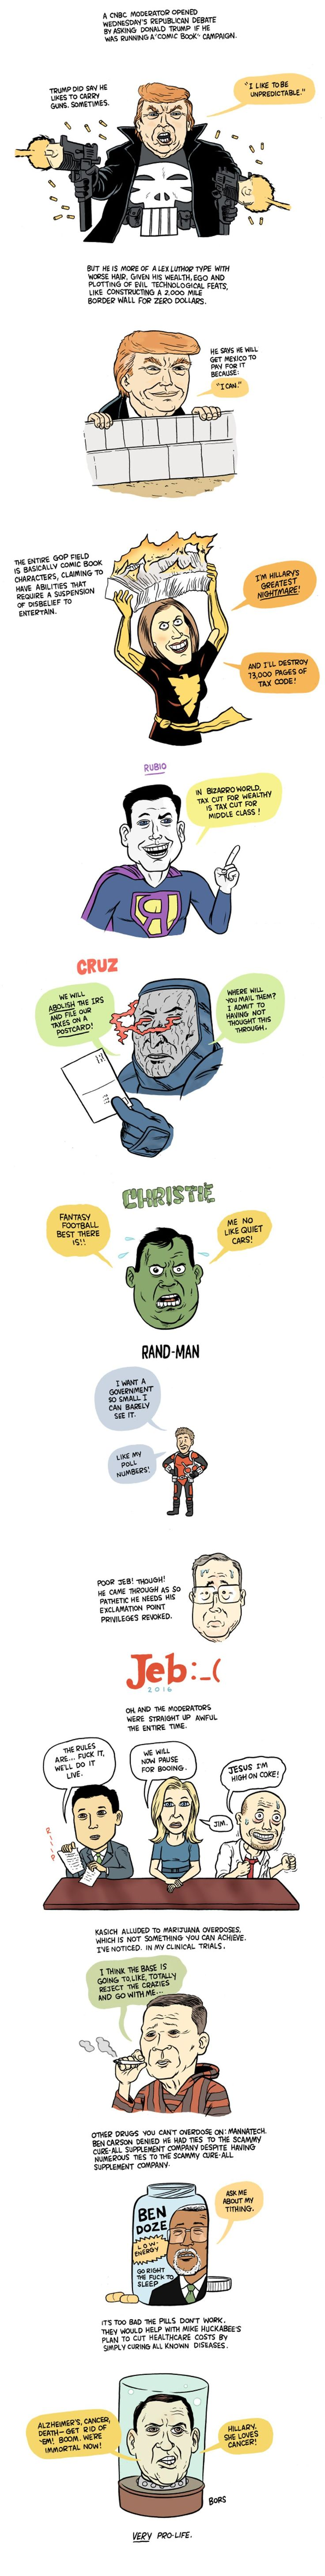 The Illustrated Guide to the 'Comic Book' GOP Debate | Rolling Stone